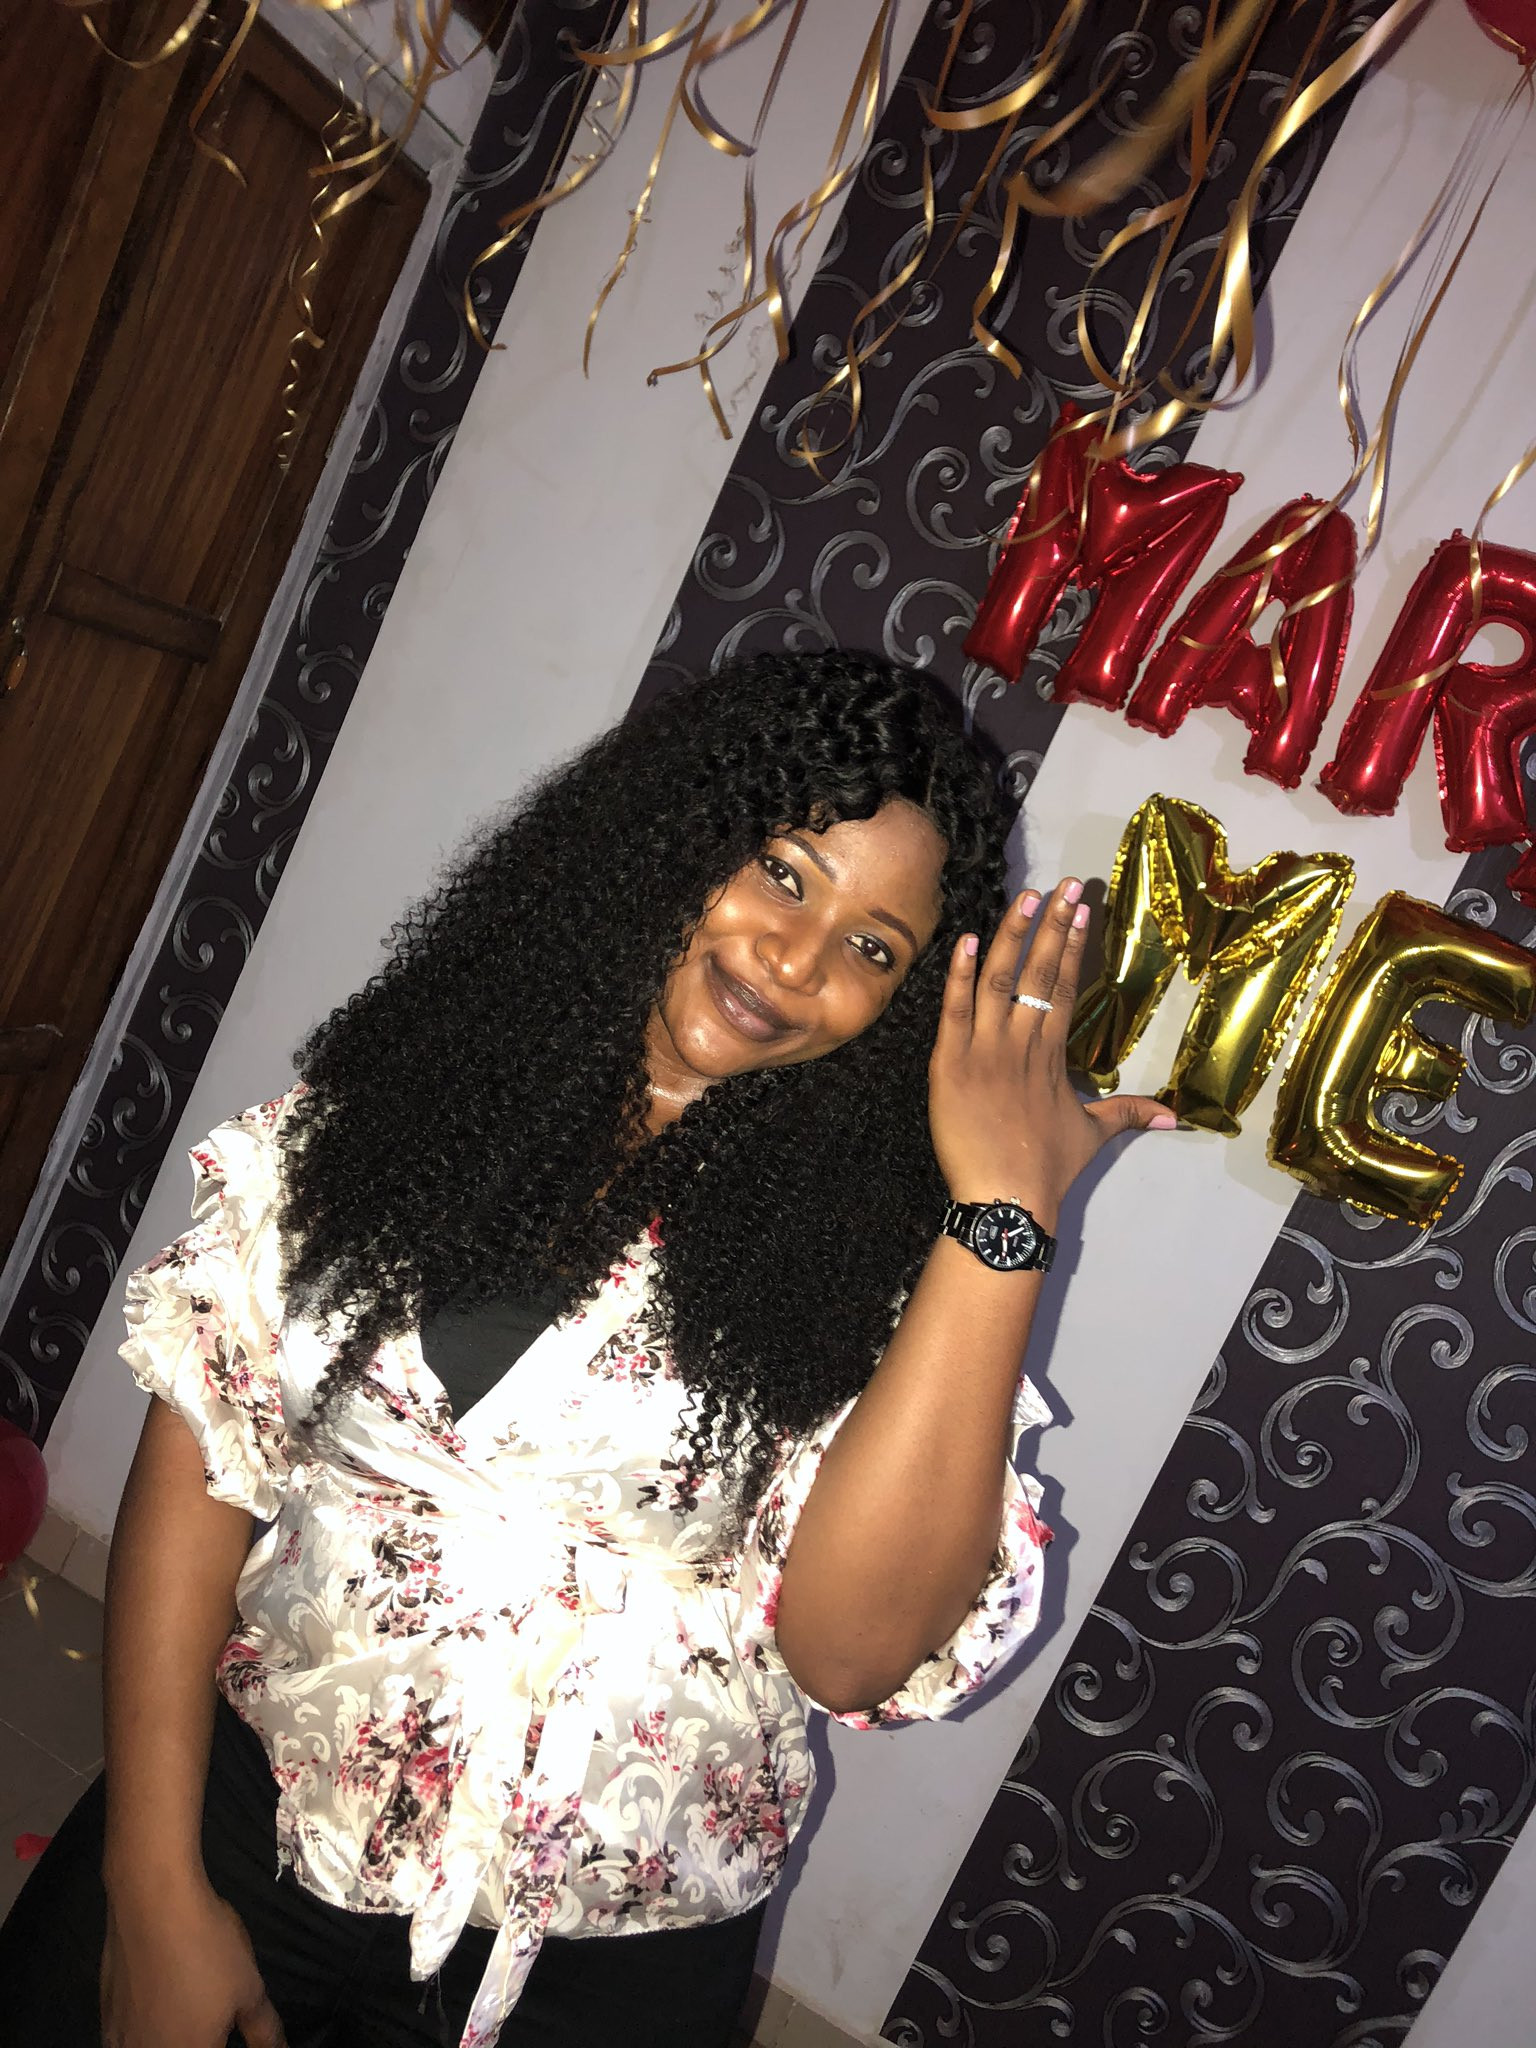 Nigerian couple are engaged after meeting on Twitter 2 years ago